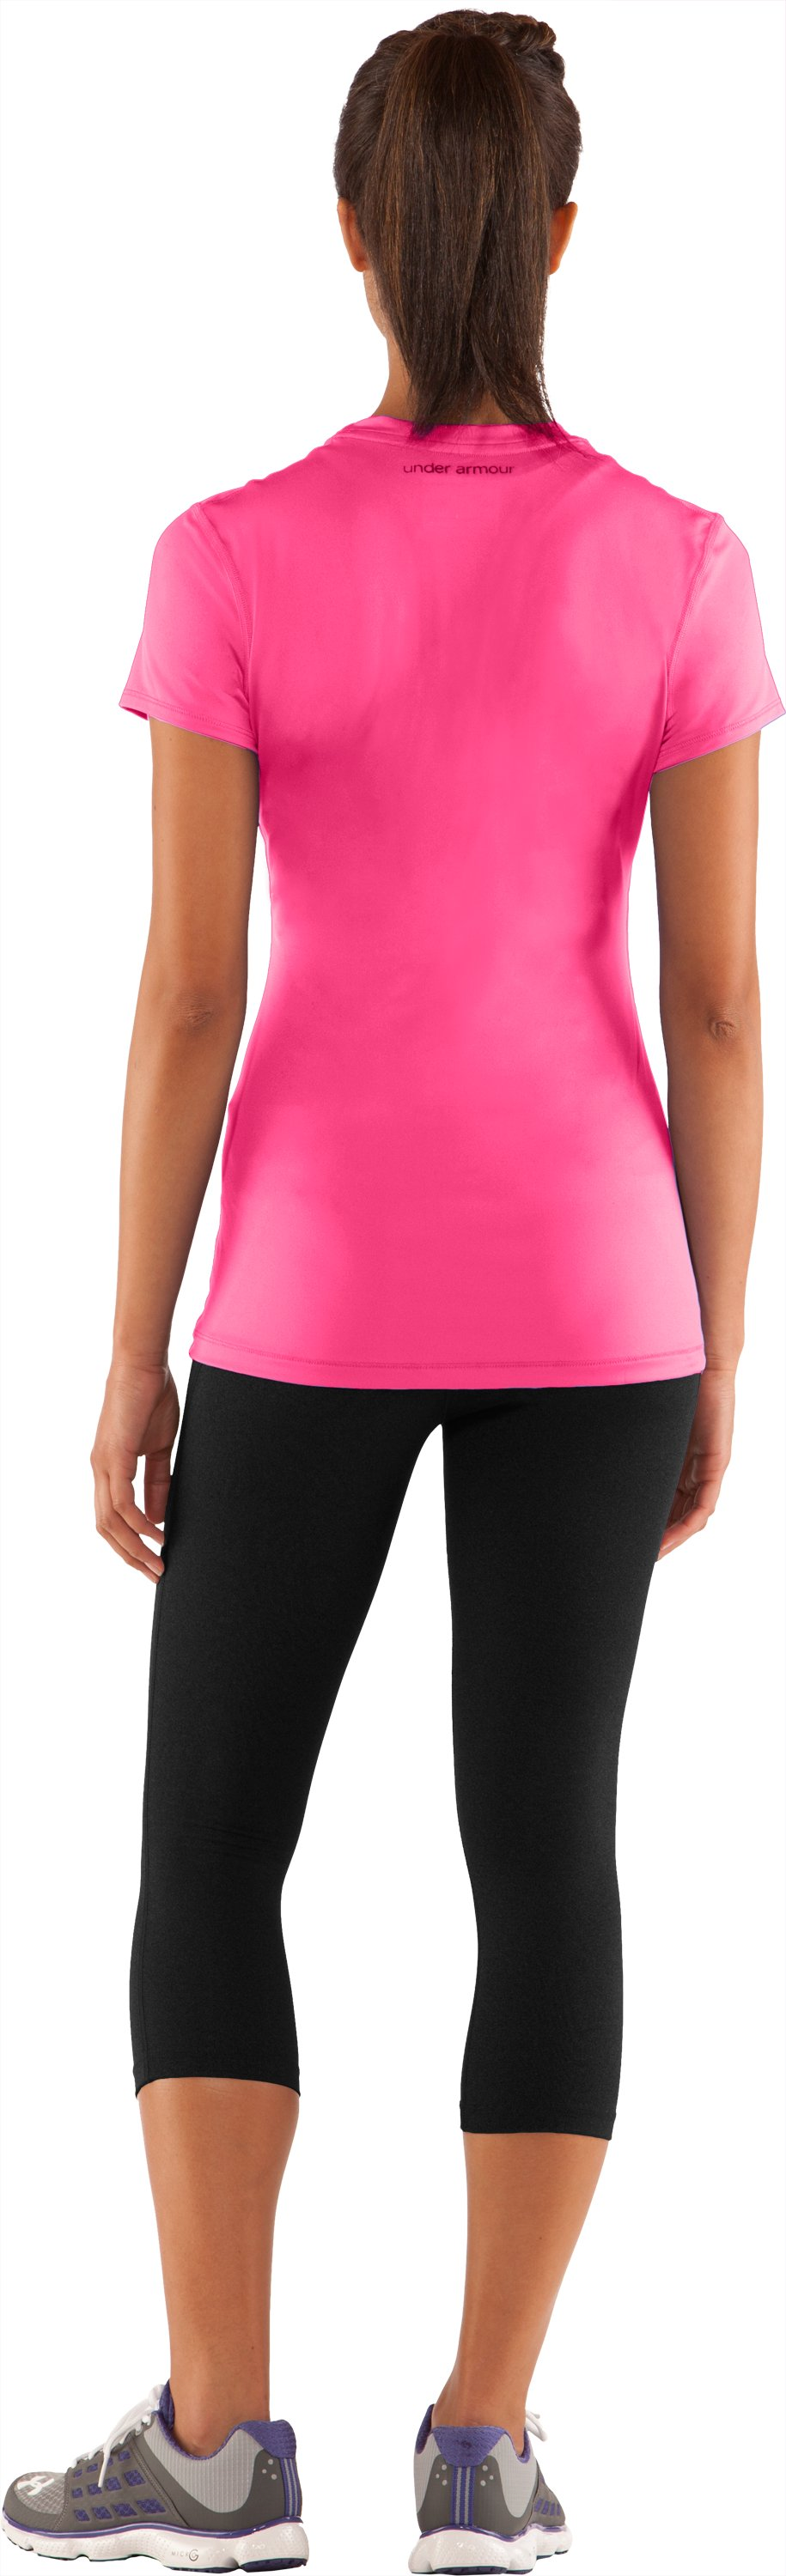 Women's HeatGear® Sonic Short Sleeve, PINKADELIC, Back